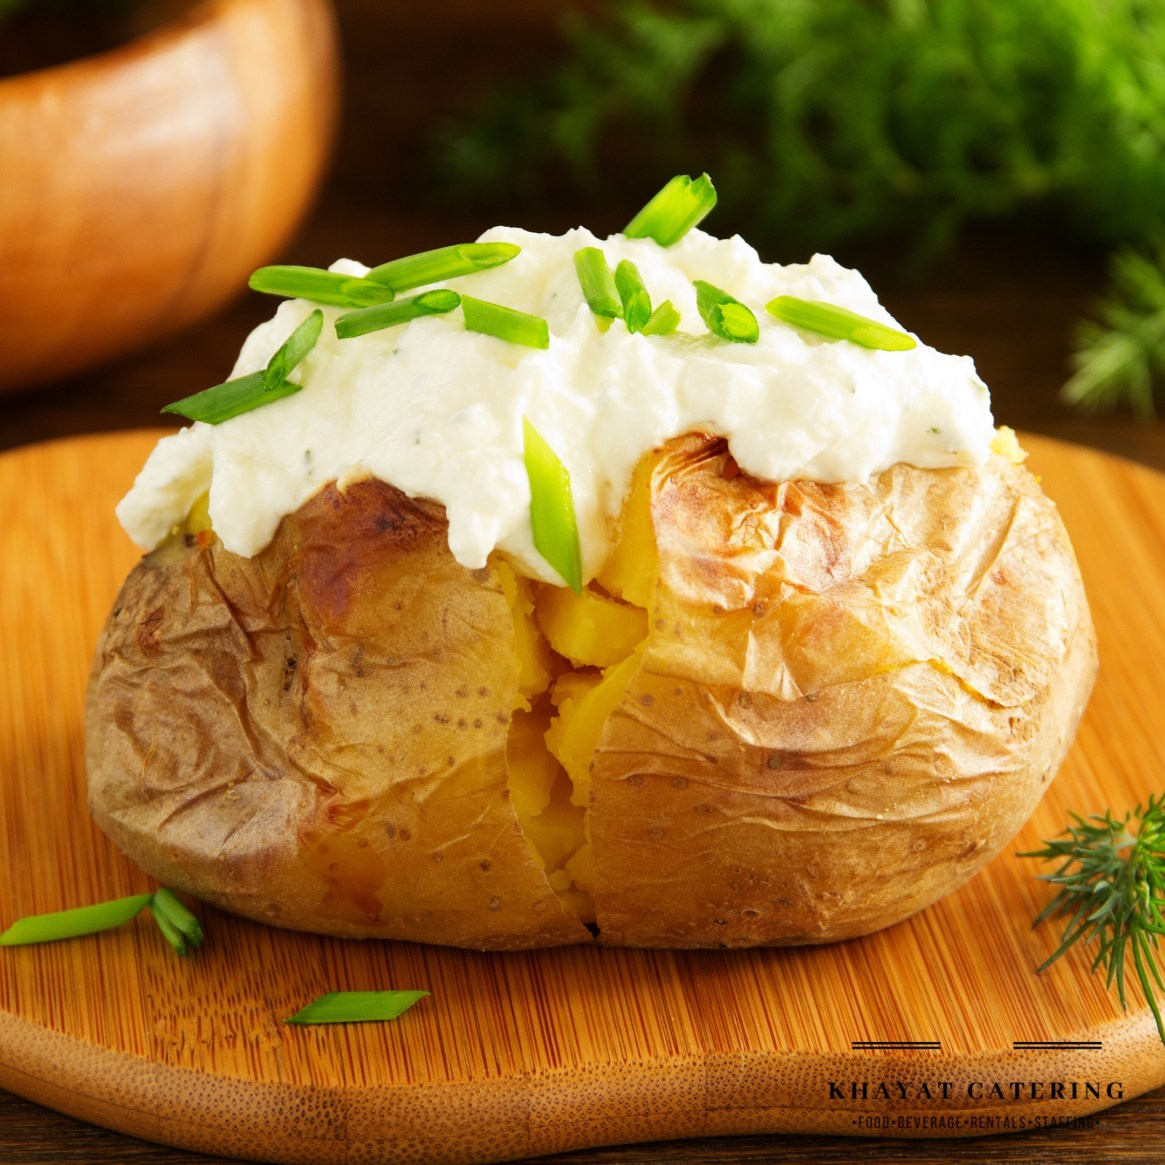 Khayat Catering baked potato